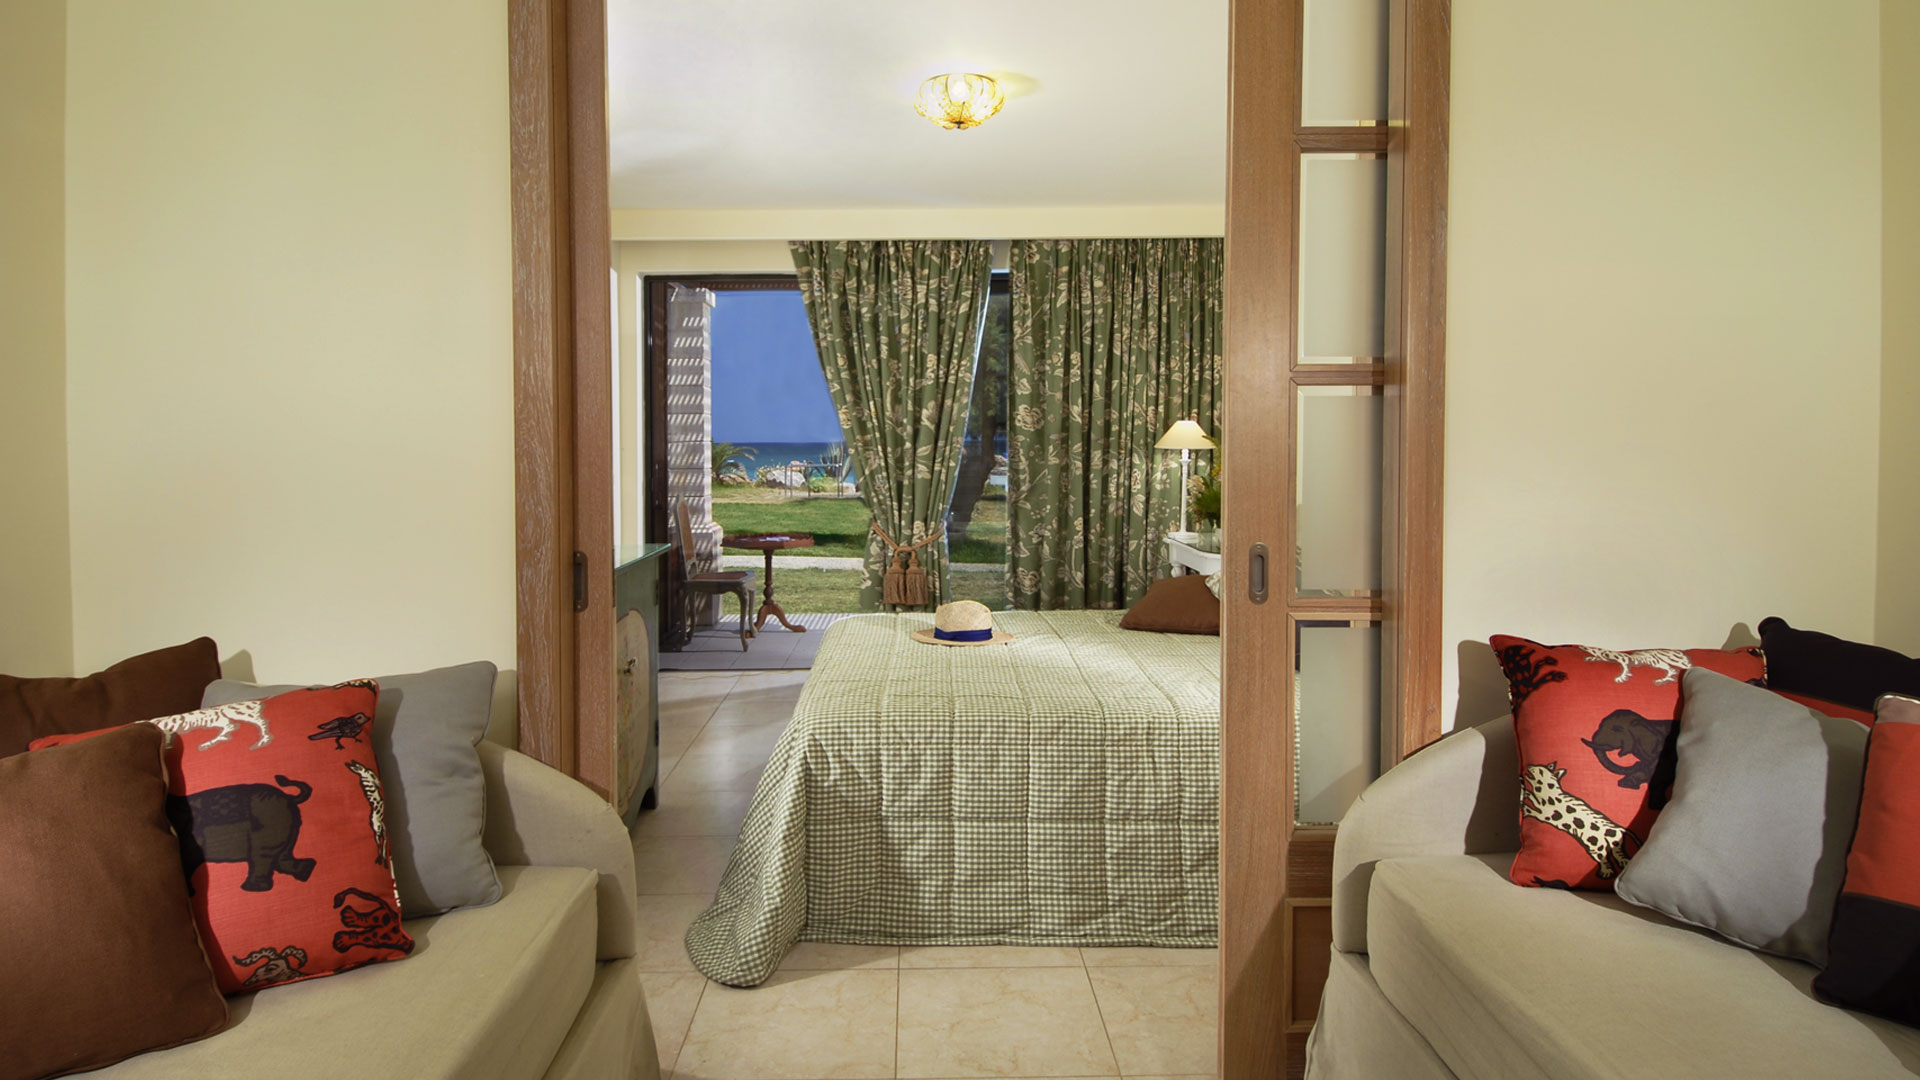 Aquila elounda village crete deluxe lux buisiness for Family room accommodation